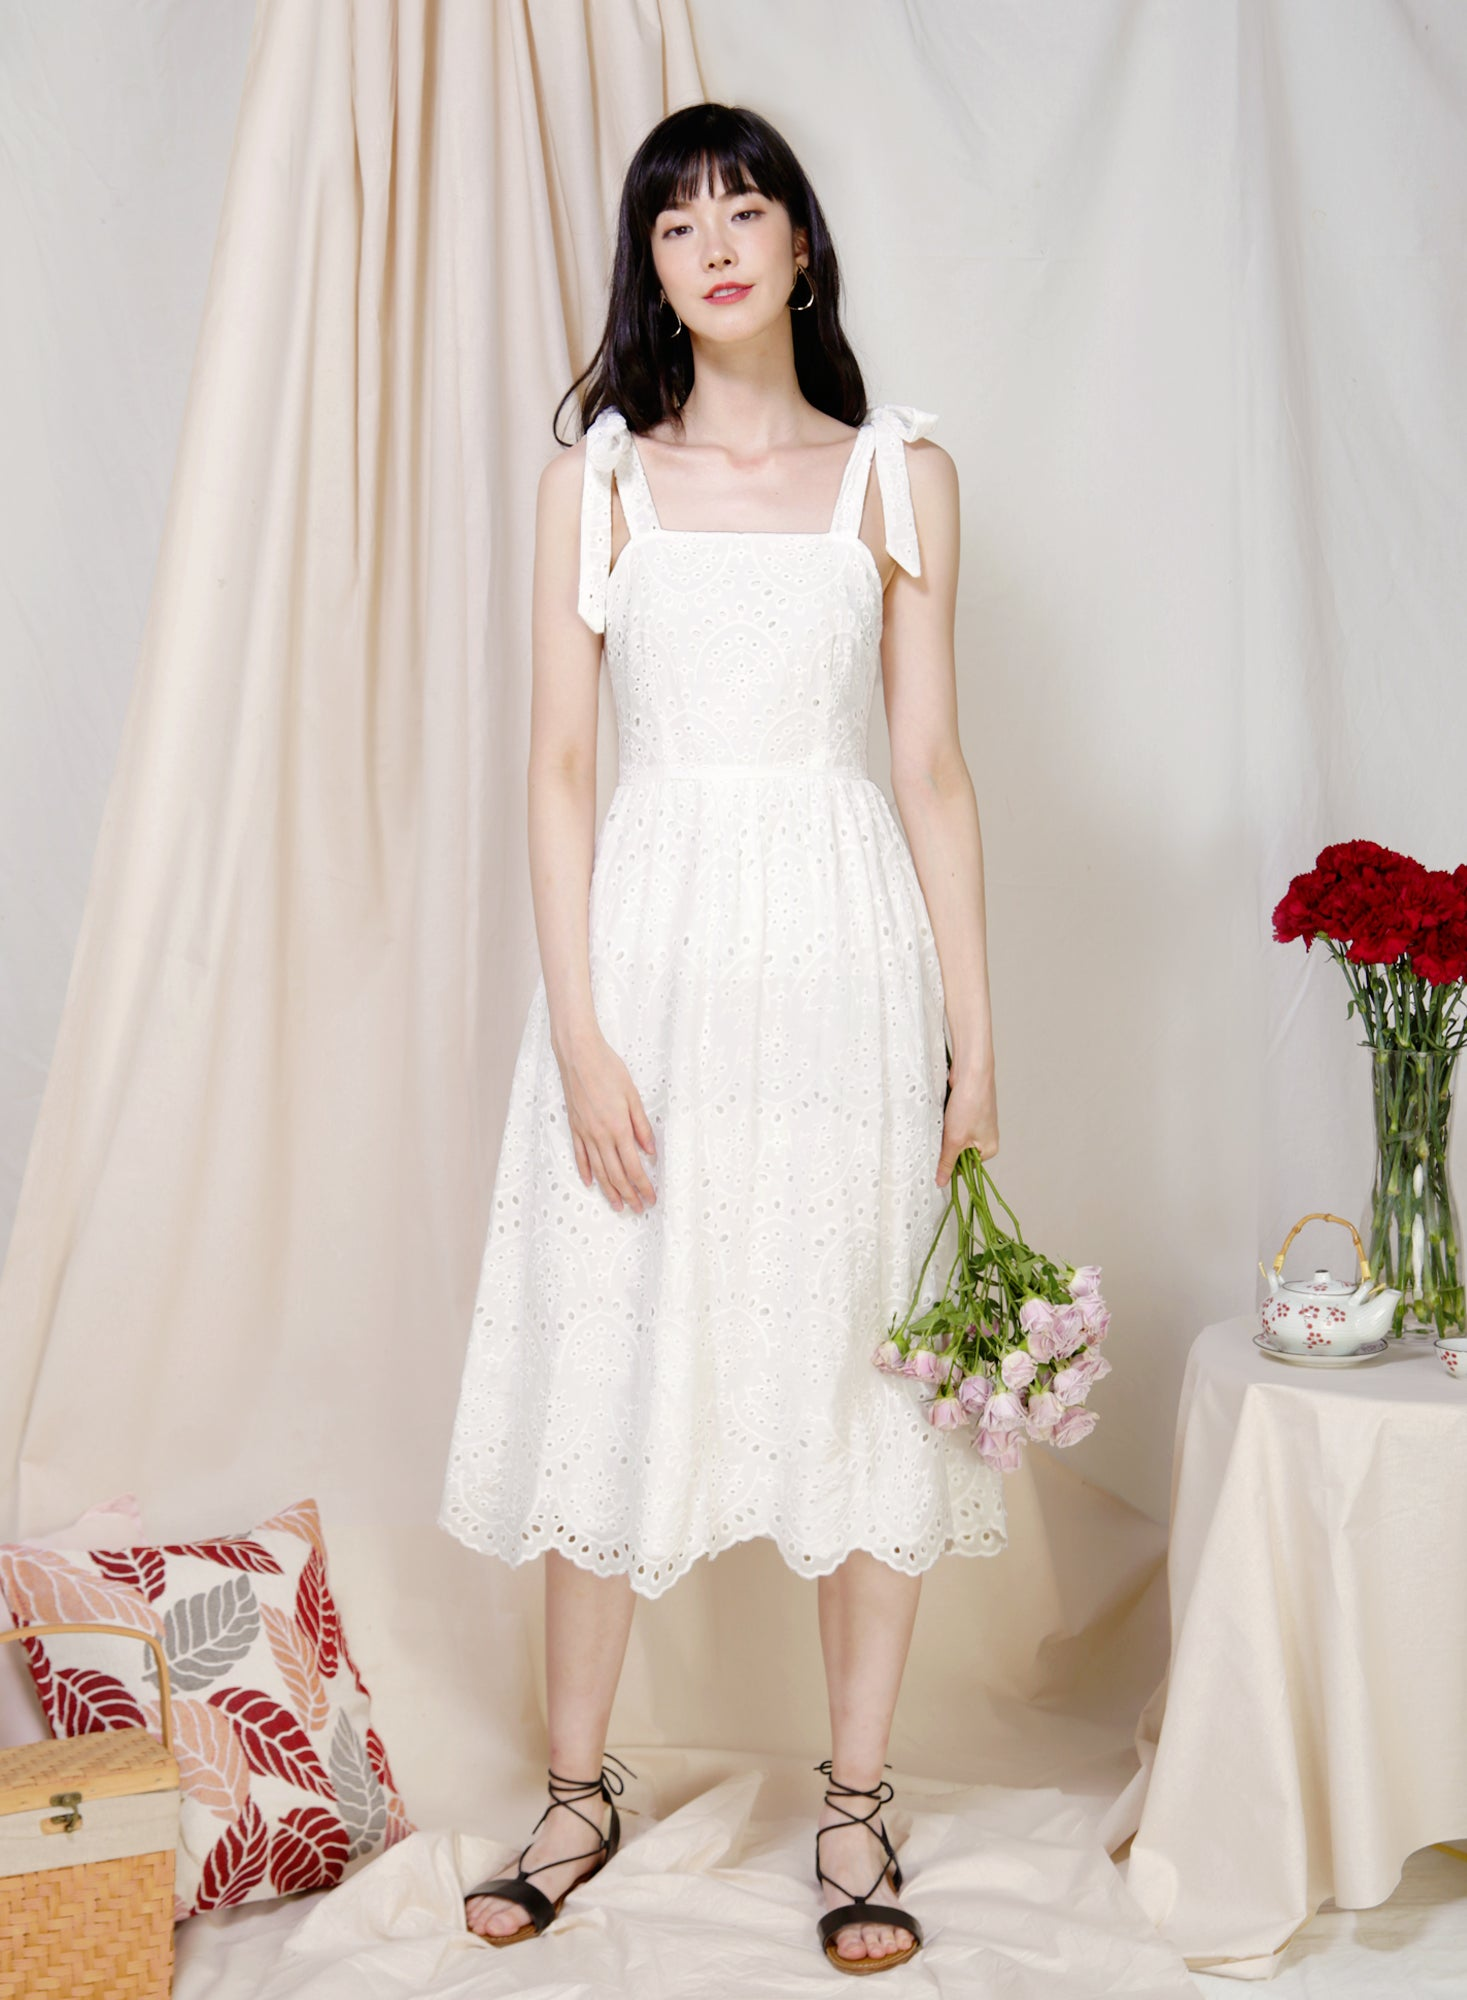 Aboard Tie Straps Eyelet Dress (White) at $ 46.50 only sold at And Well Dressed Online Fashion Store Singapore